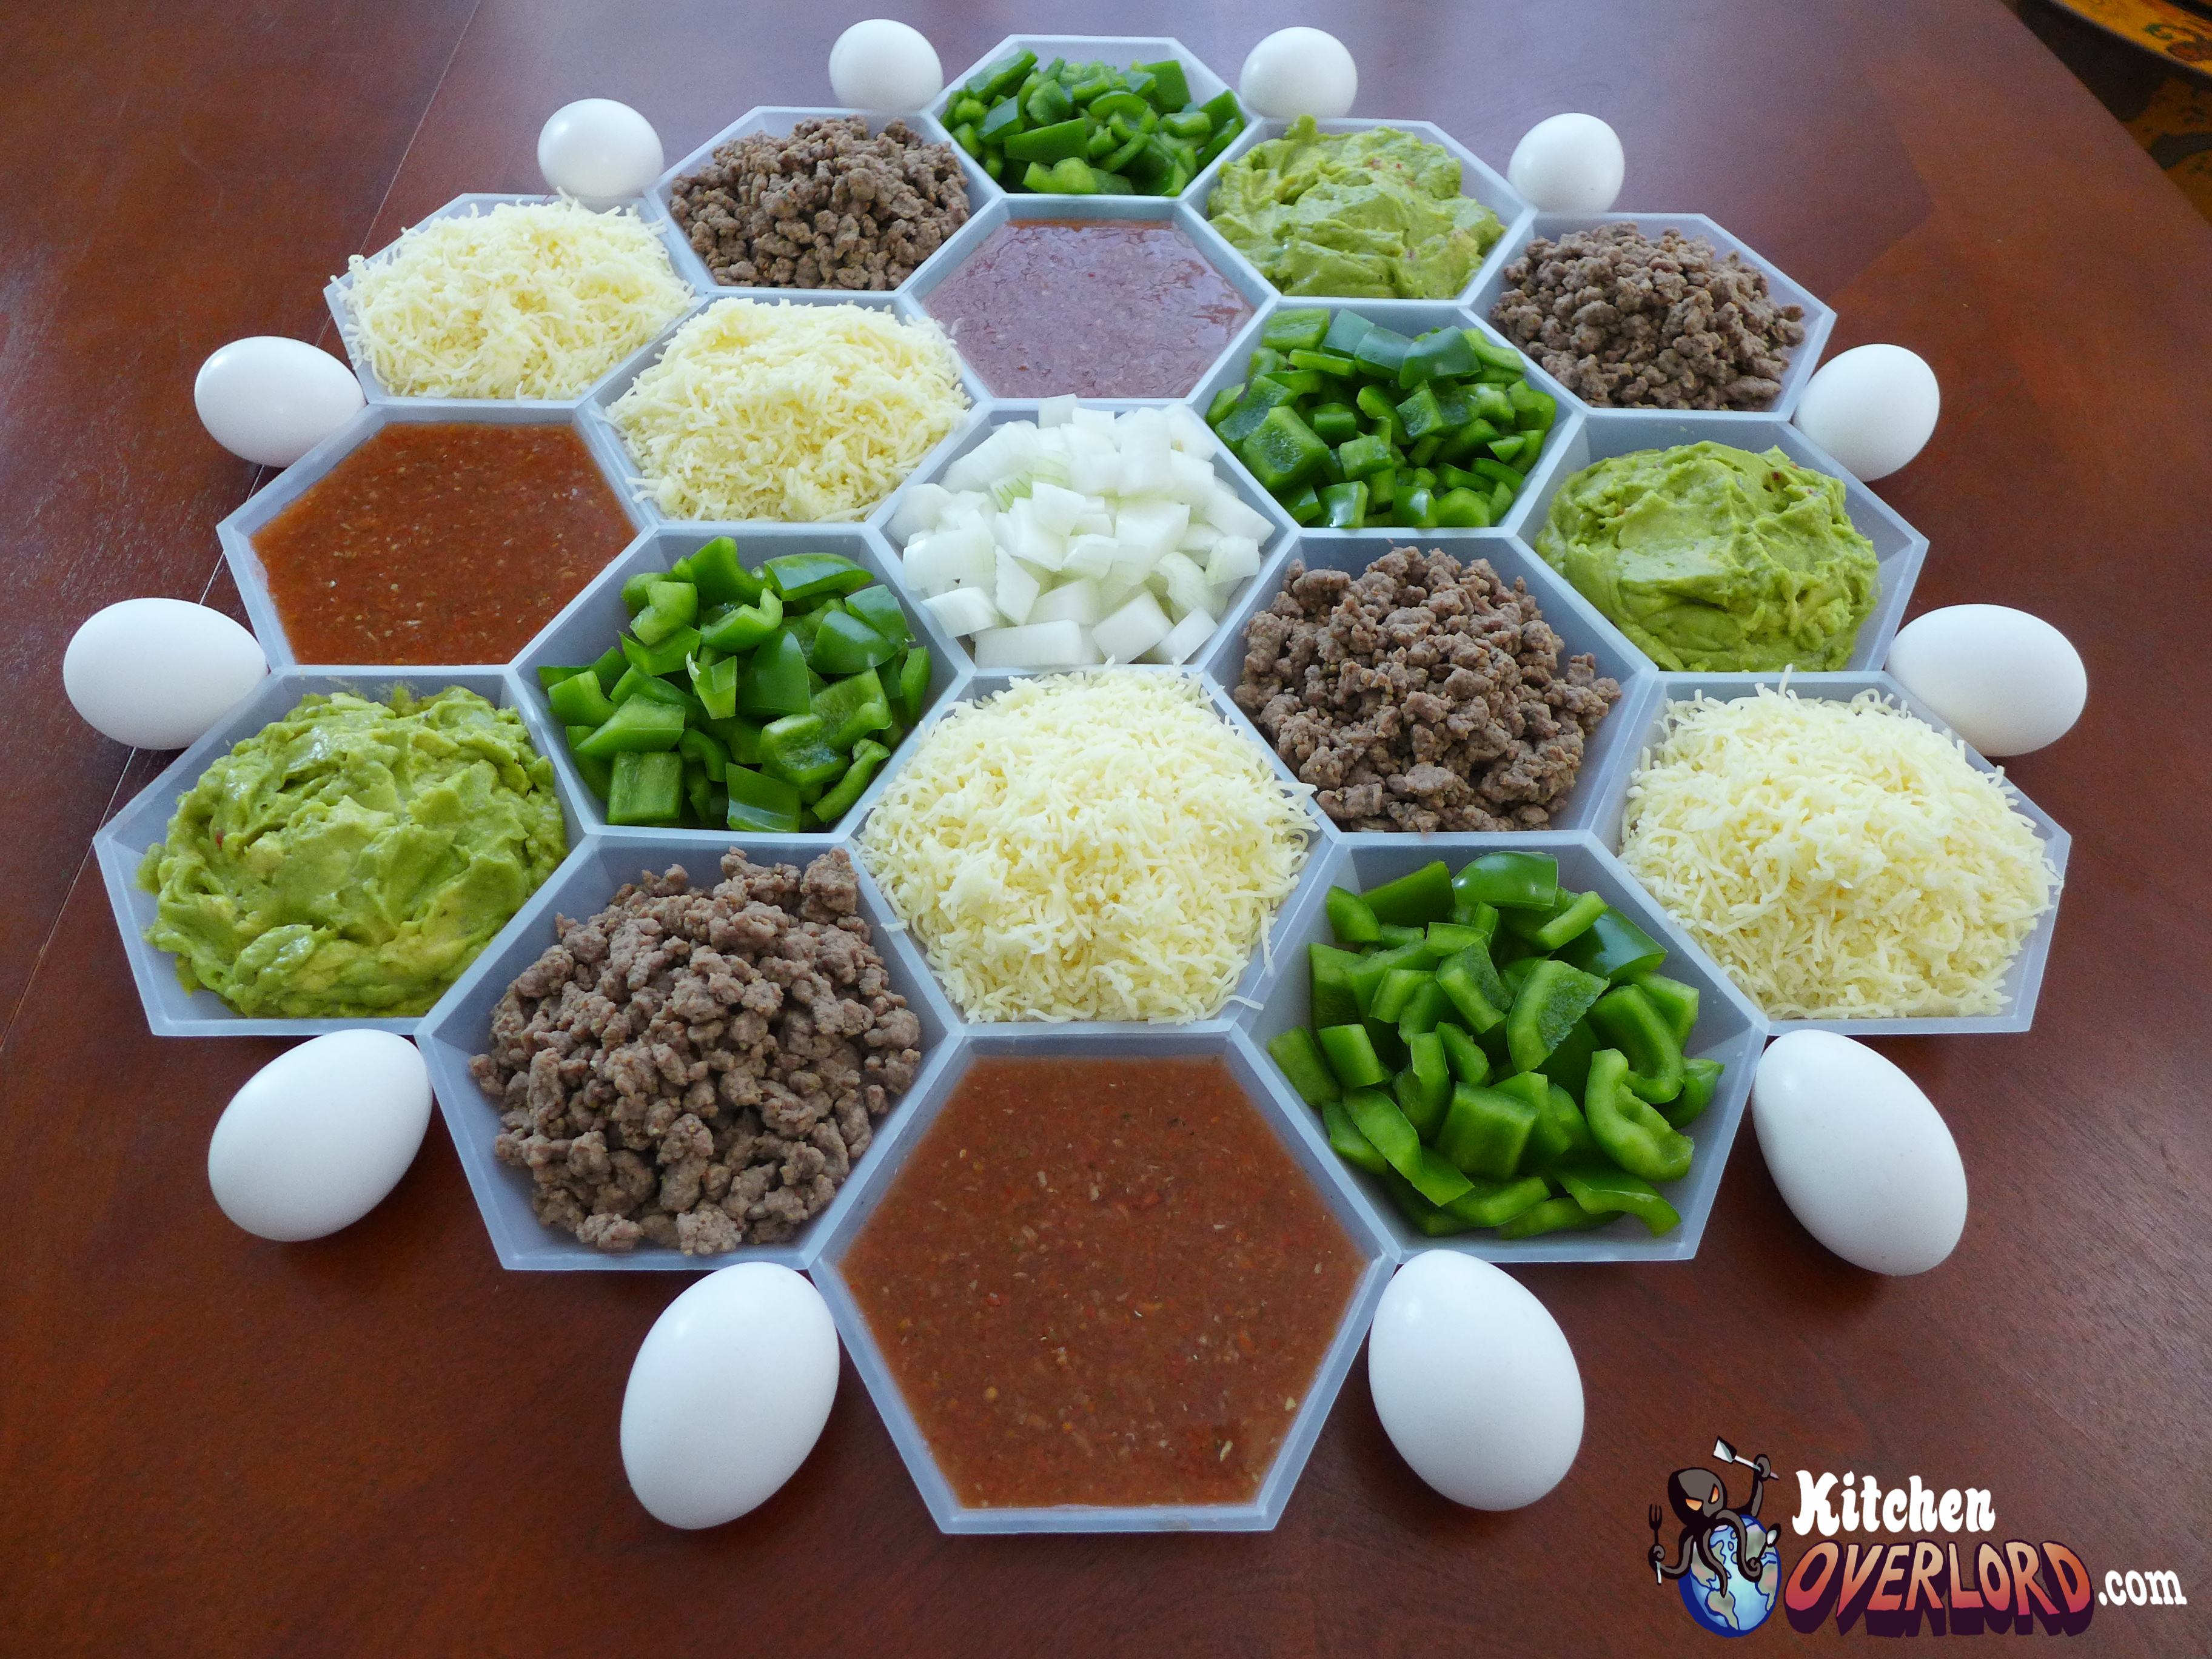 Kitchen Overlord - Settlers of Catan Breakfast Taco Bar